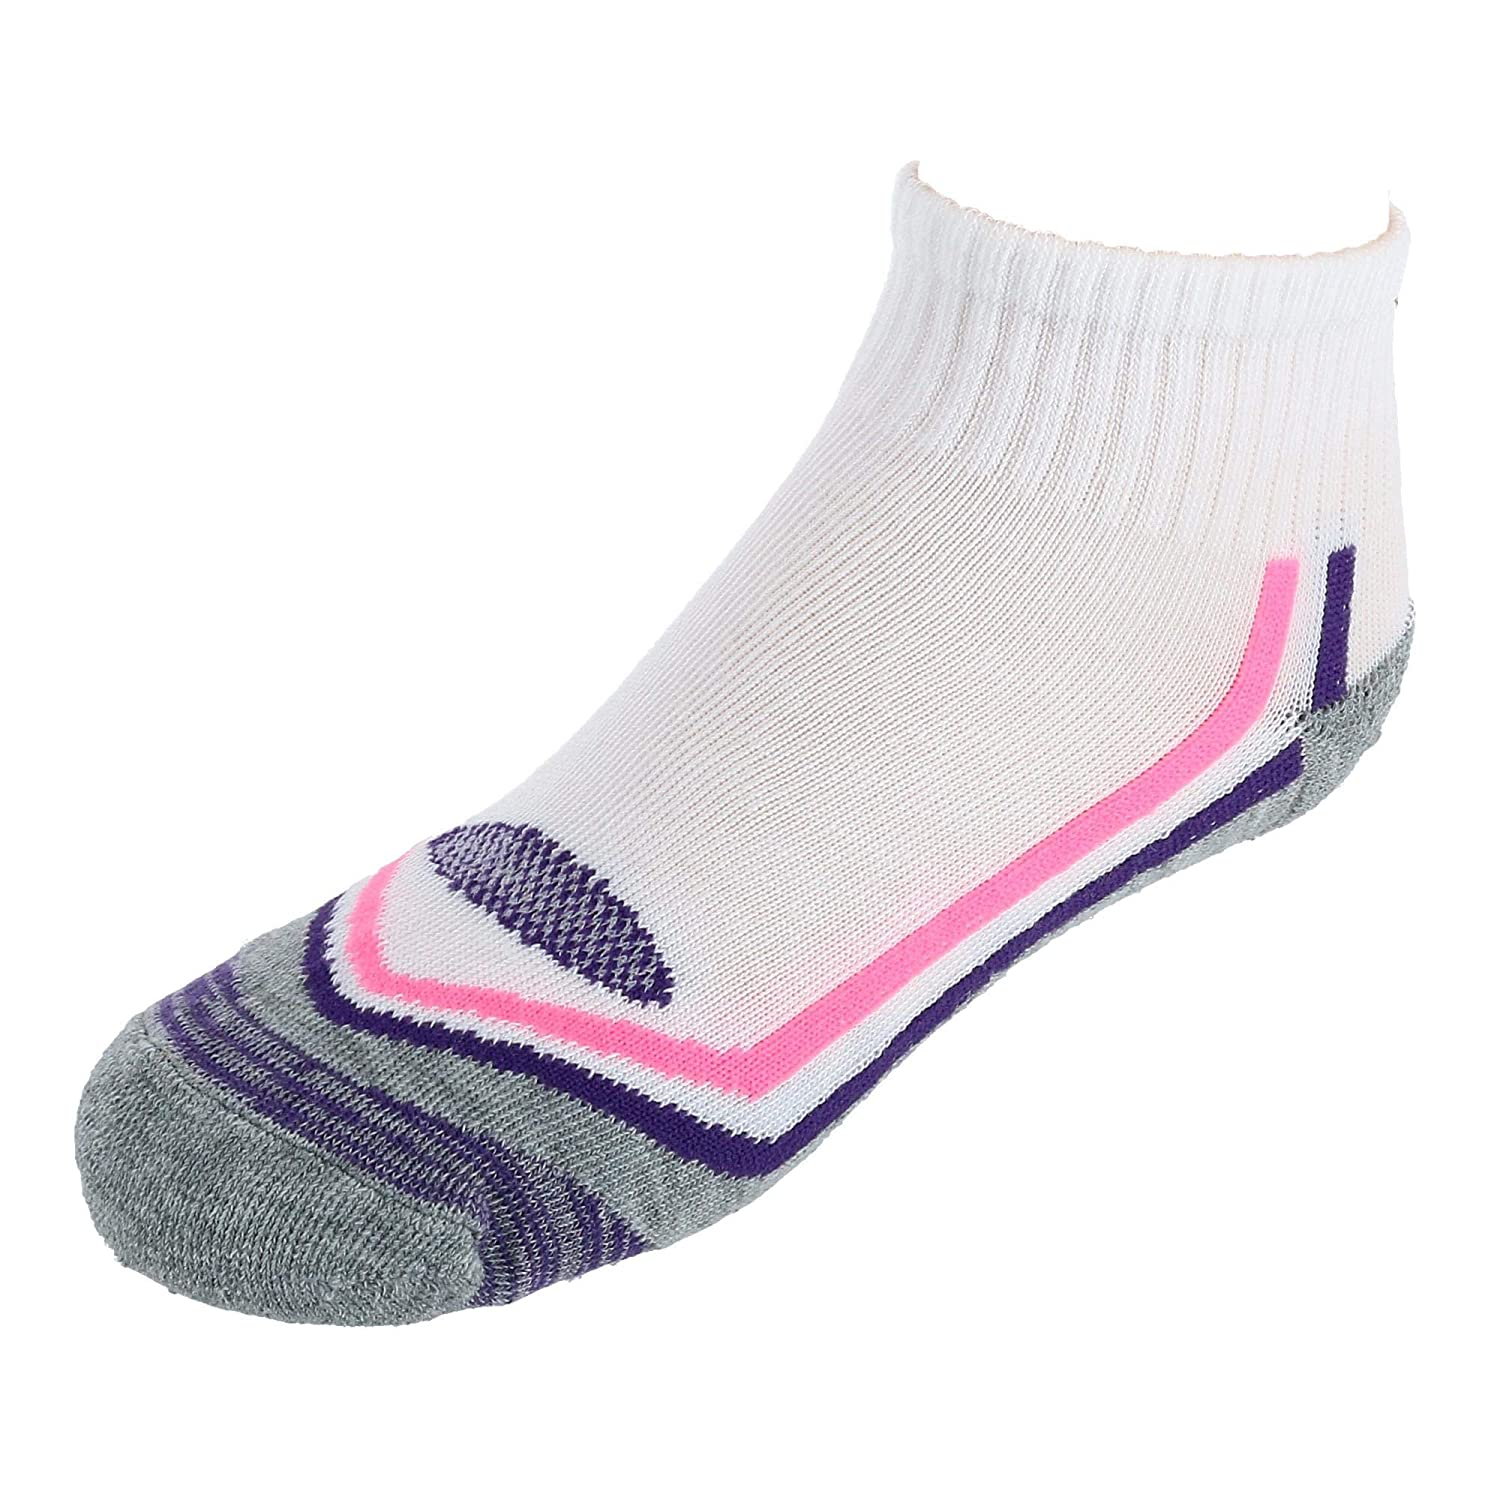 Hanes Girls Active Breathable Ankle Socks 4 Pair Pack